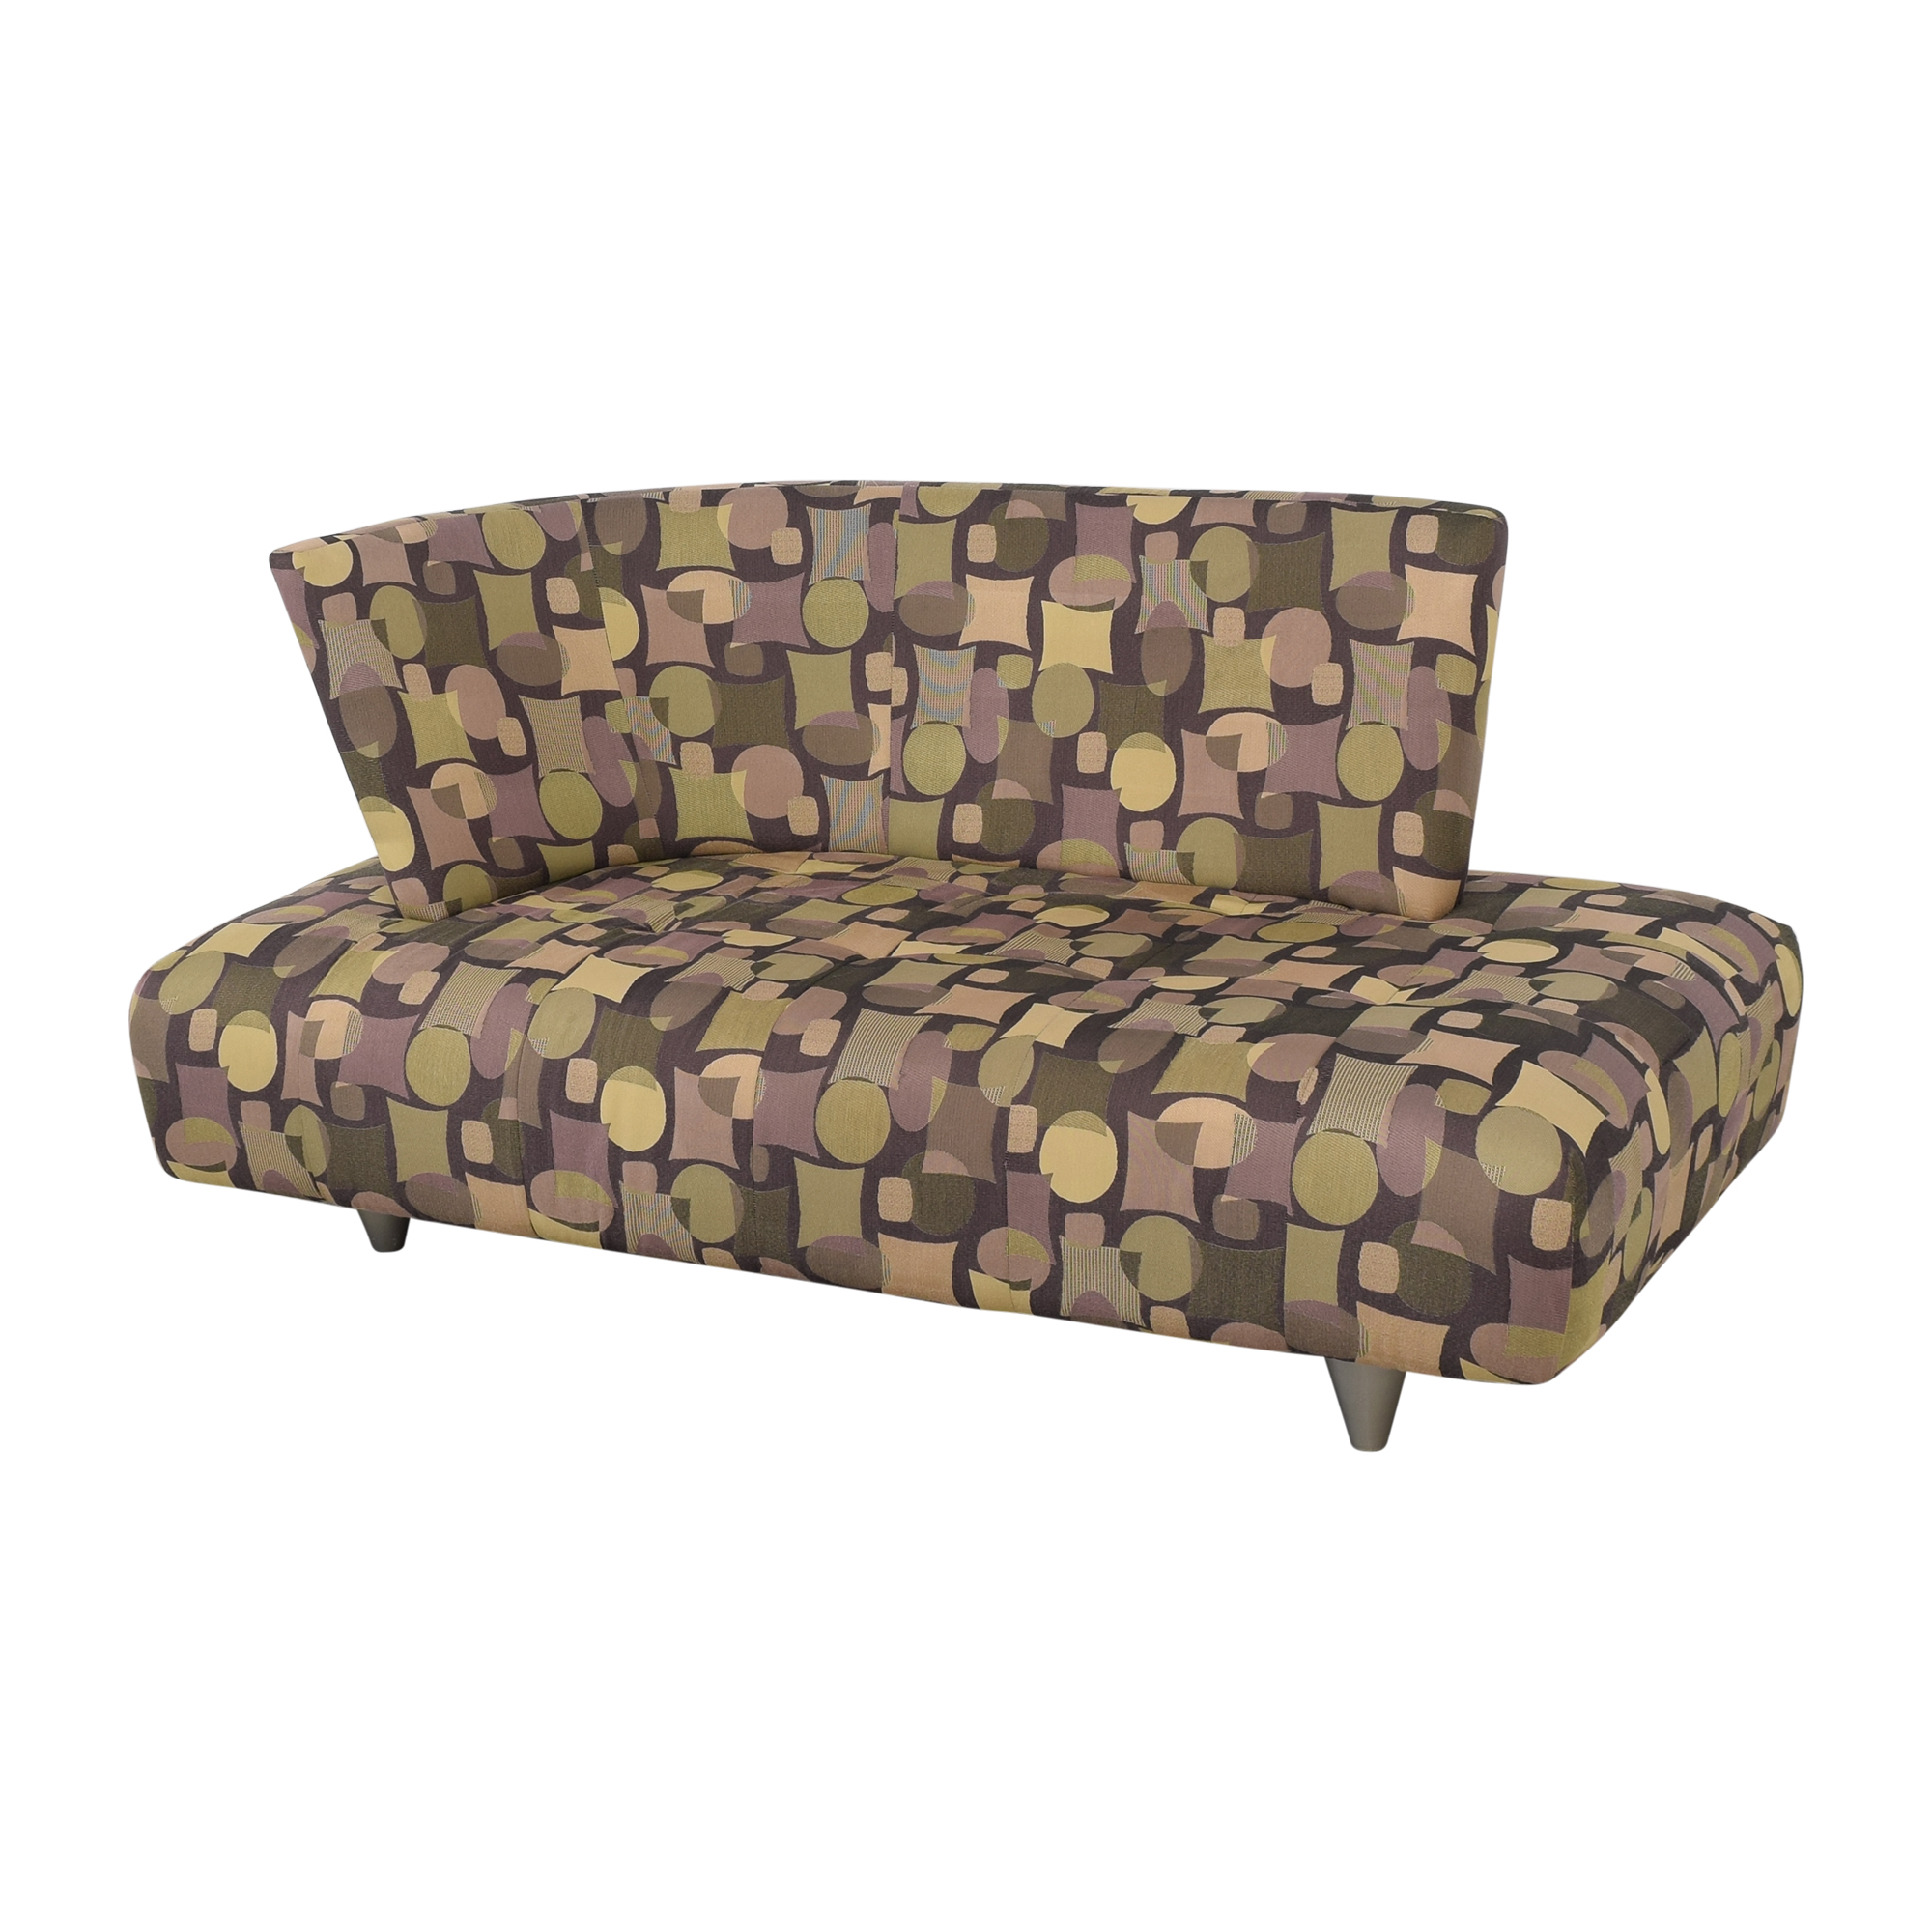 Retro Style Chaise Lounge sale